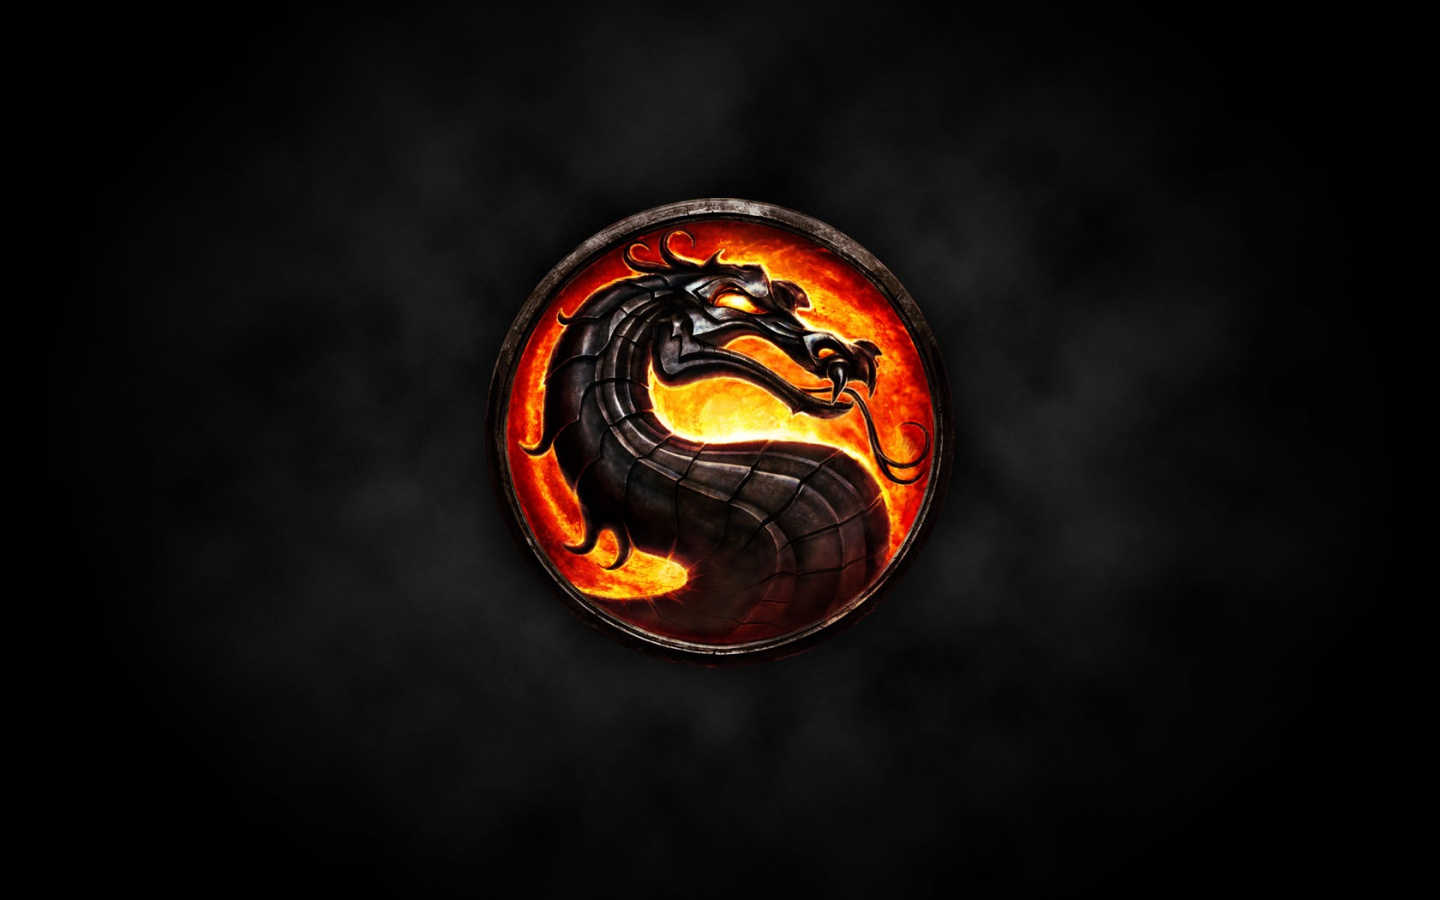 Mortal Kombat Wallpaper Symbol HD 4979 Wallpaper Cool Walldiskpaper 1440x900